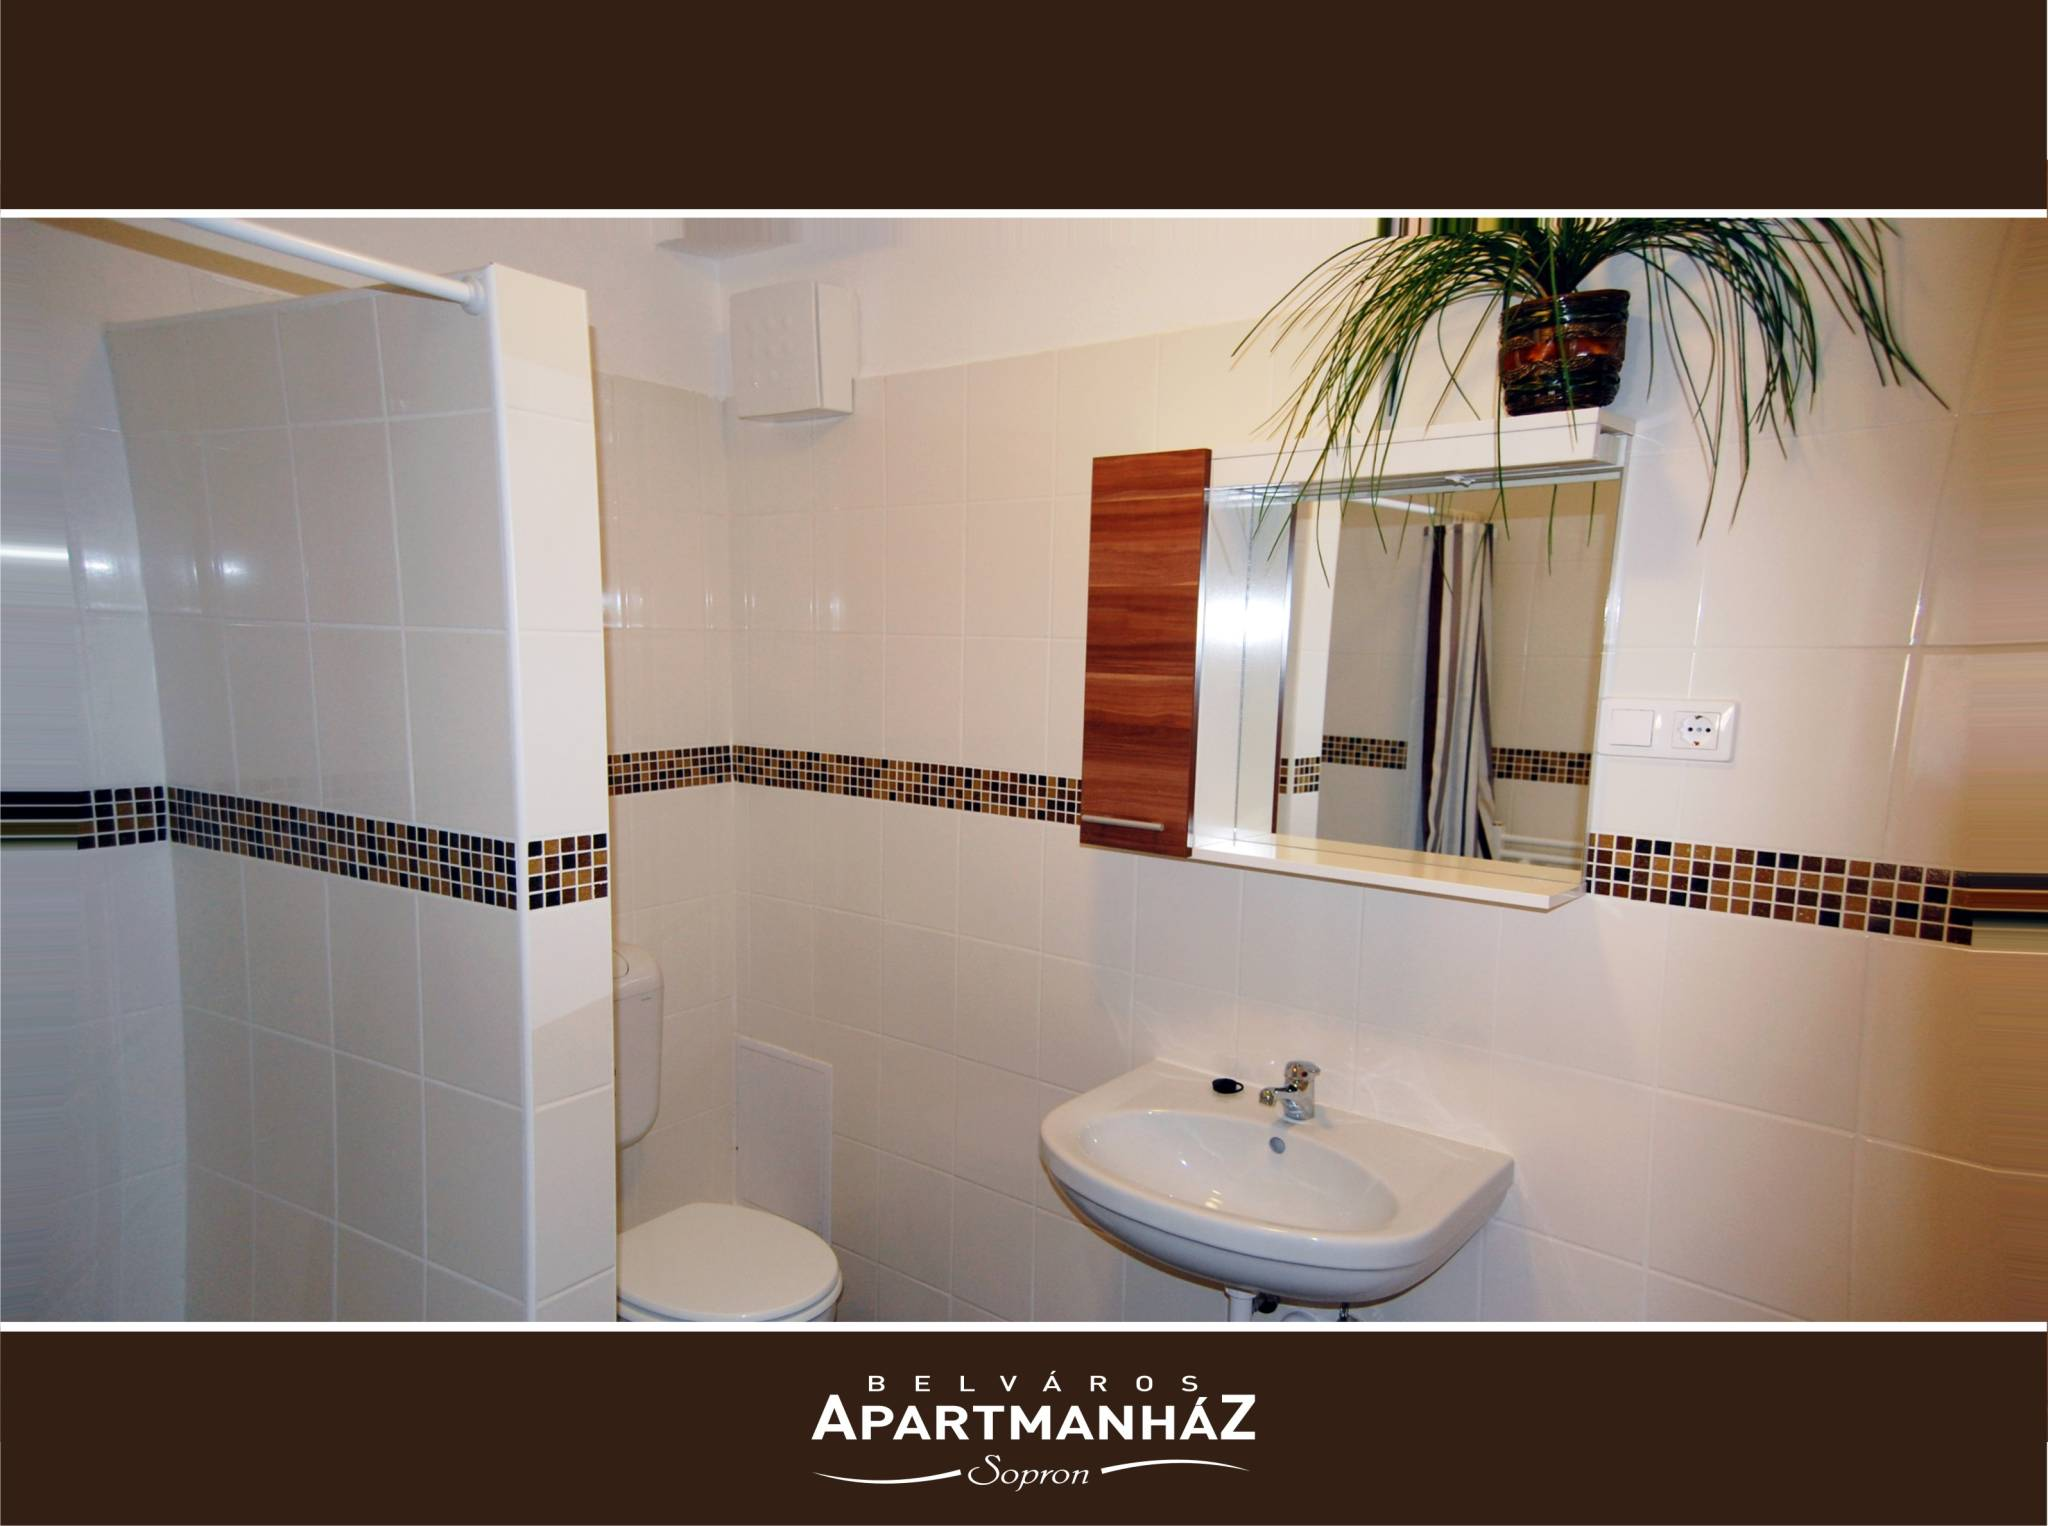 Studio frdszobs 2 fs apartman 1 hltrrel (ptgyazhat) - 1a17b998-a461-7f9a-e05b-bc3d5f17fc3c